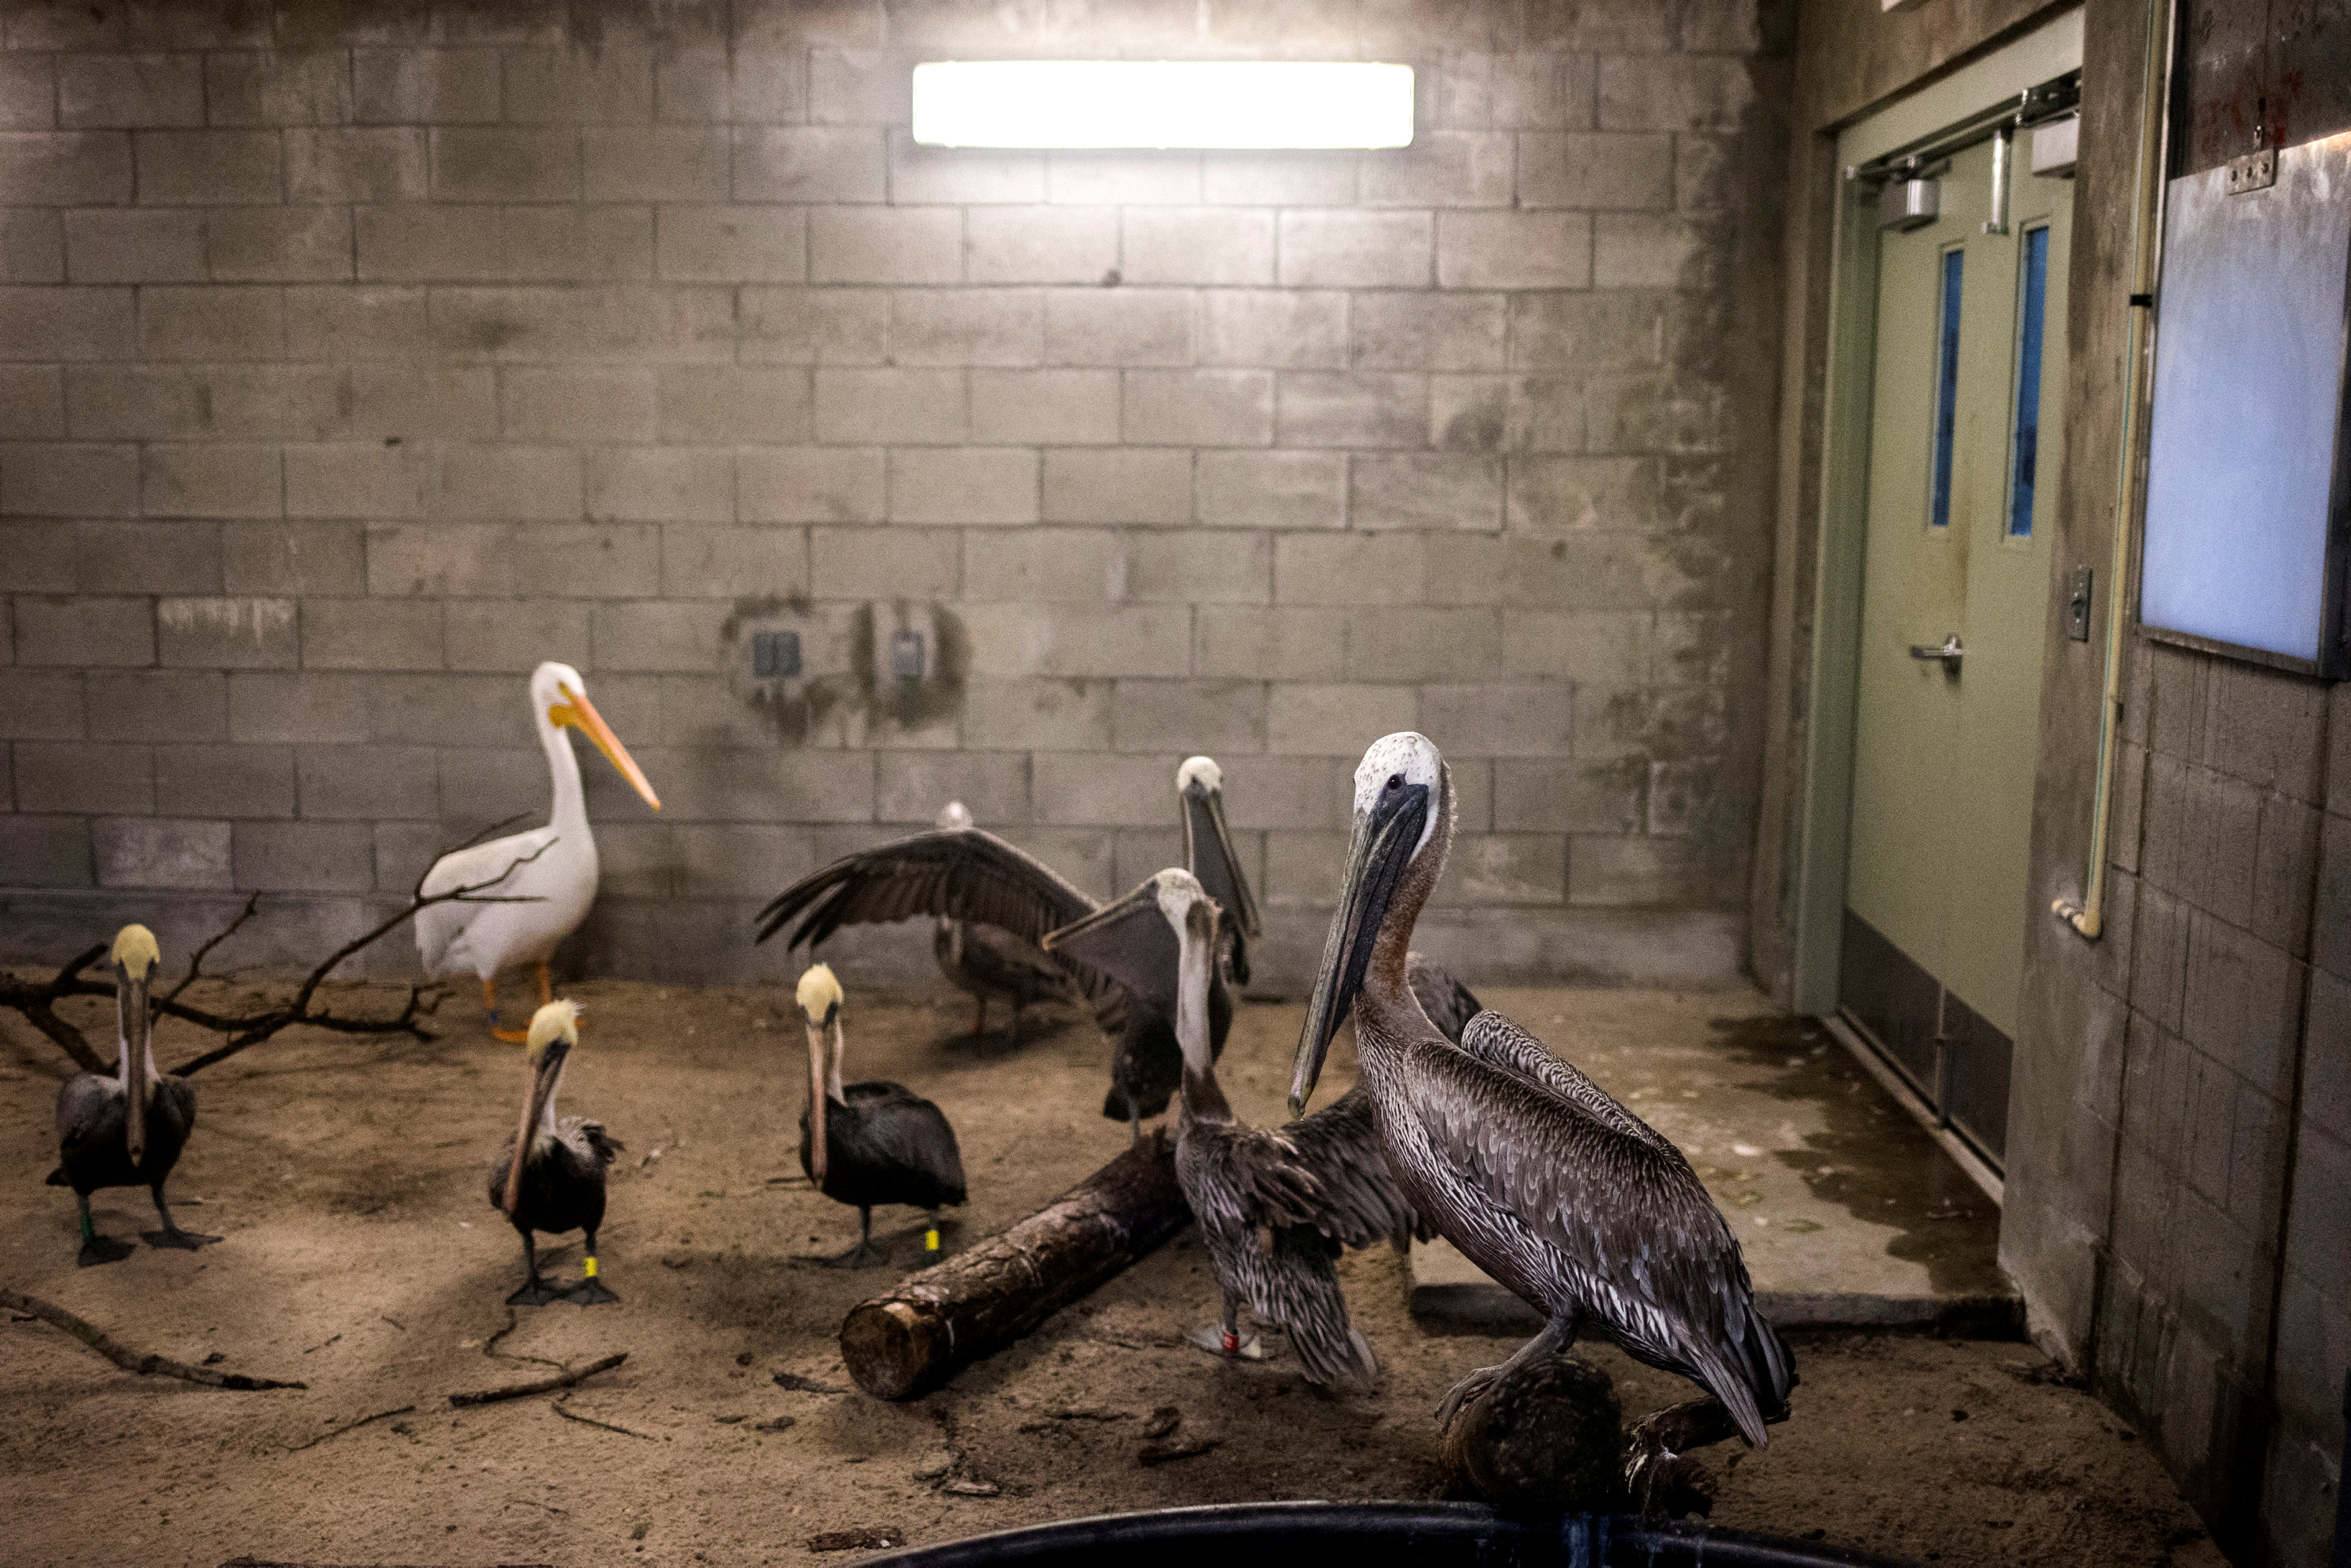 Brown pelicans and an American white pelican take refuge in a shelter ahead of the downfall of Hurricane Irma at the zoo in Miami, Florida, U.S. September 9, 2017.  REUTERS/Adrees Latif